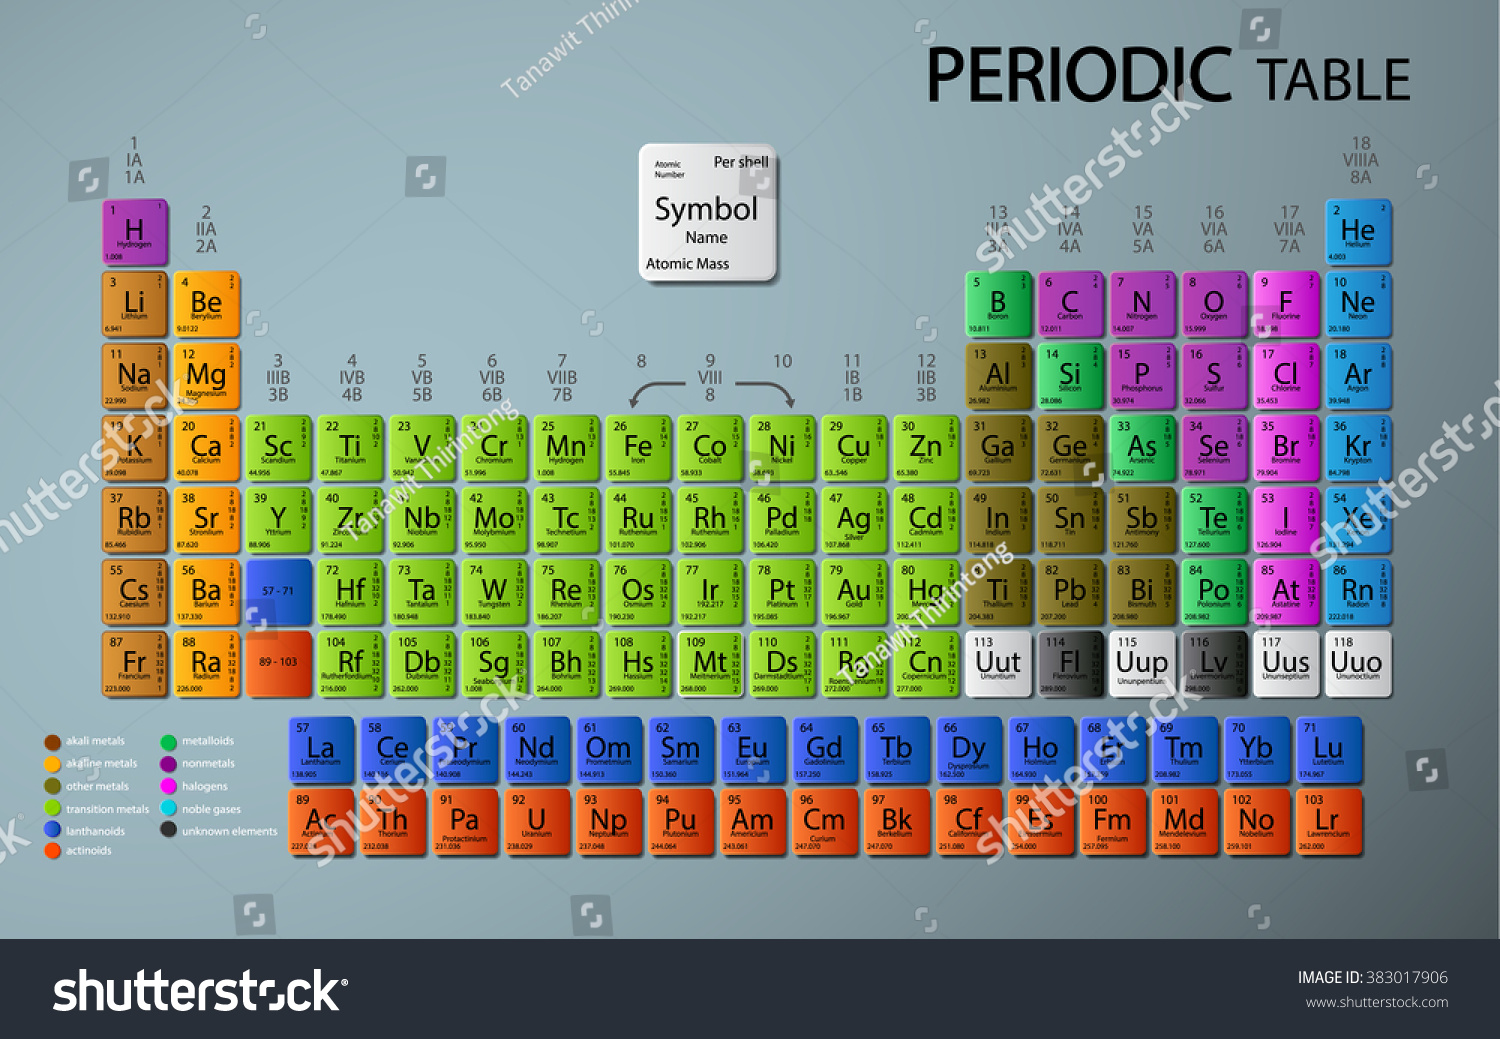 Periodic table elements stock vector 383017906 shutterstock periodic table of the elements gamestrikefo Image collections